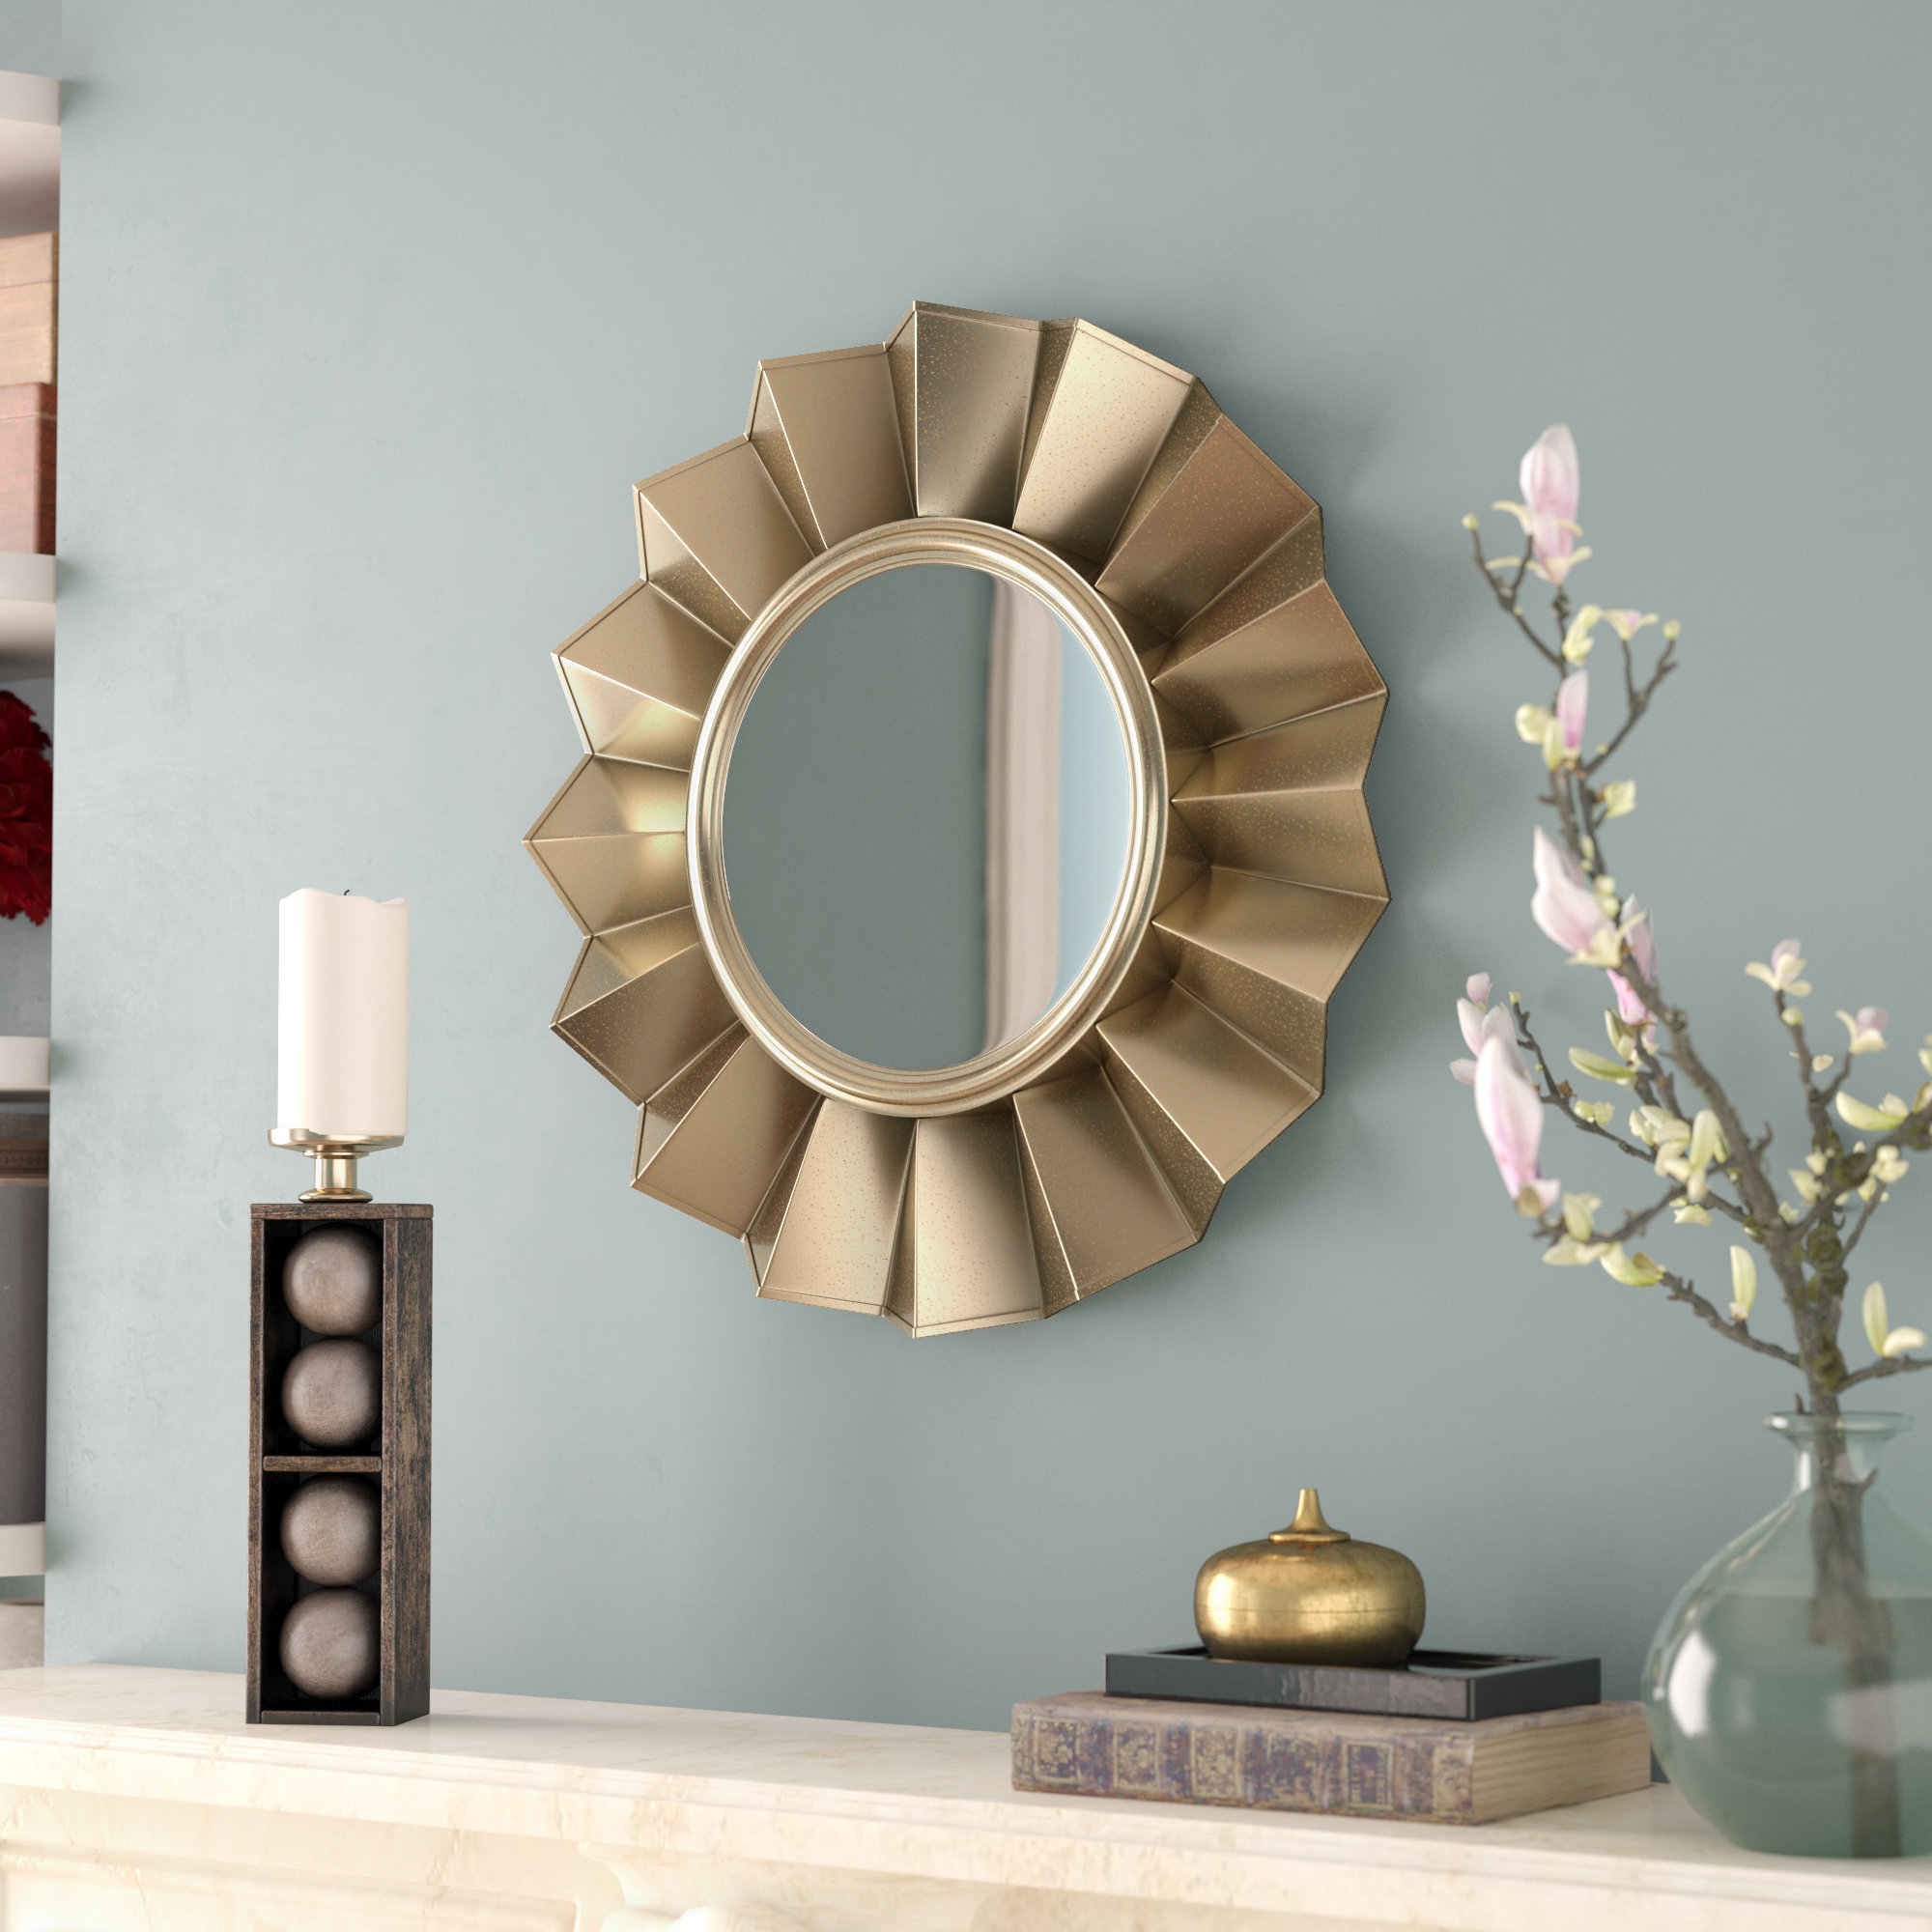 36 Inch Round Wall Mirror Gold | Wayfair With Regard To Tata Openwork Round Wall Mirrors (View 22 of 30)